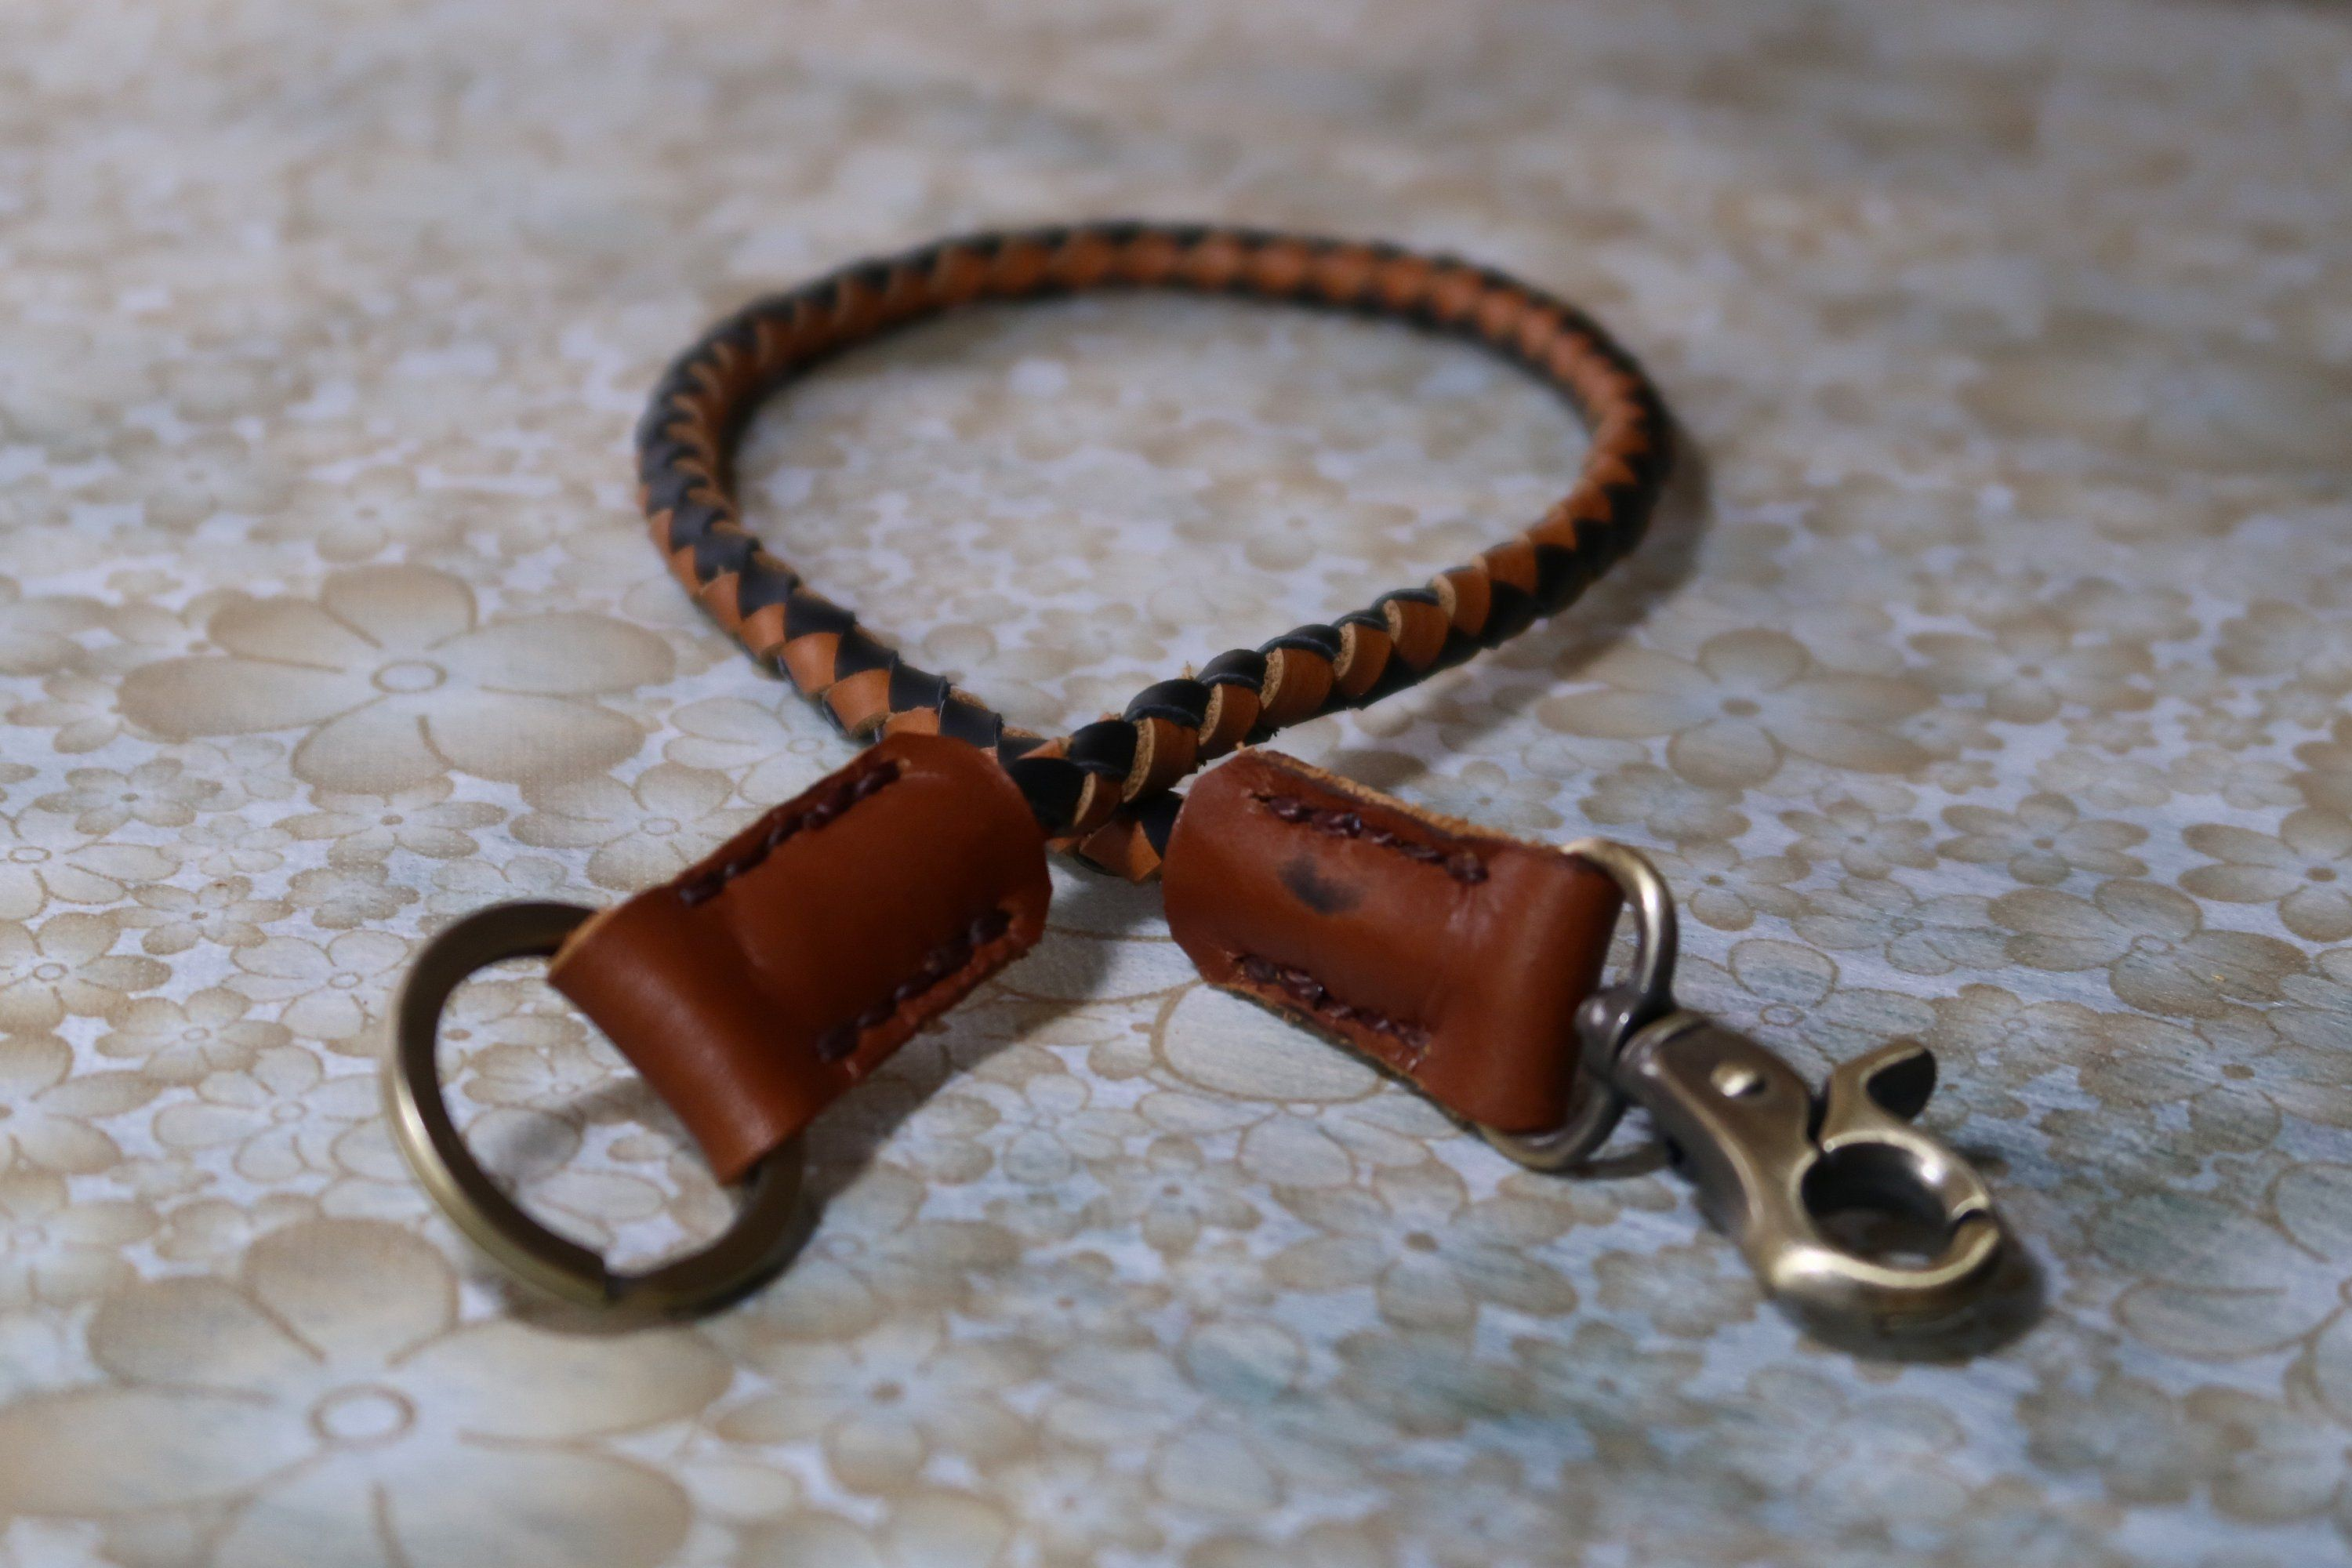 Tan Braided Leather Lanyard Leather Key Lanyard Biker Wallet Chain with Silver Tone Metal Hook and Key Ring Leather Key Ring